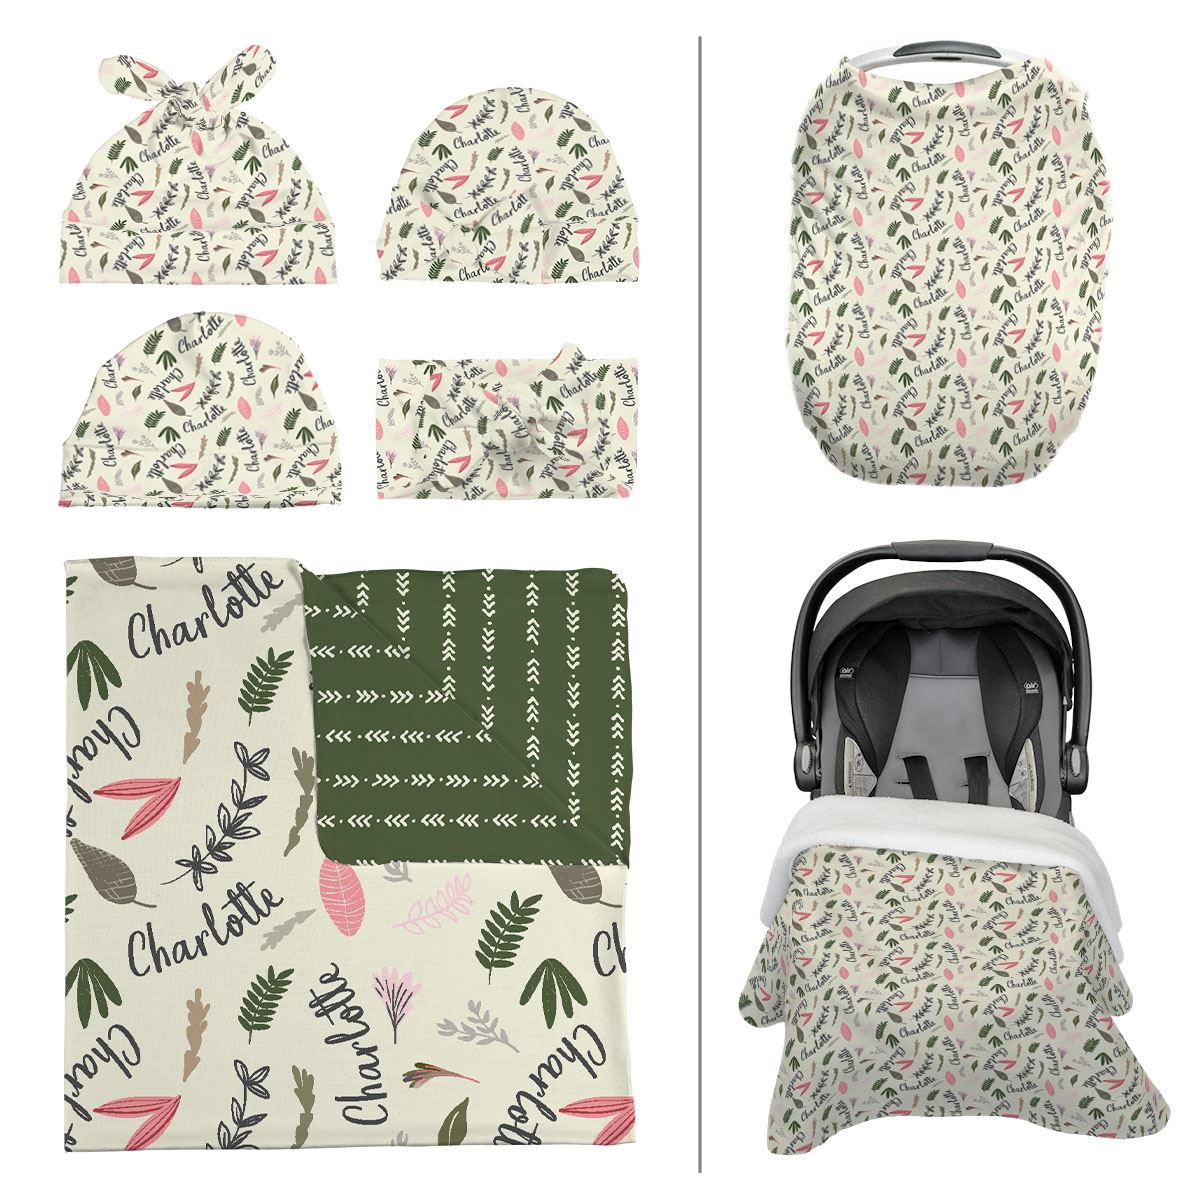 Amani's Floral | Take Me Home Bundle